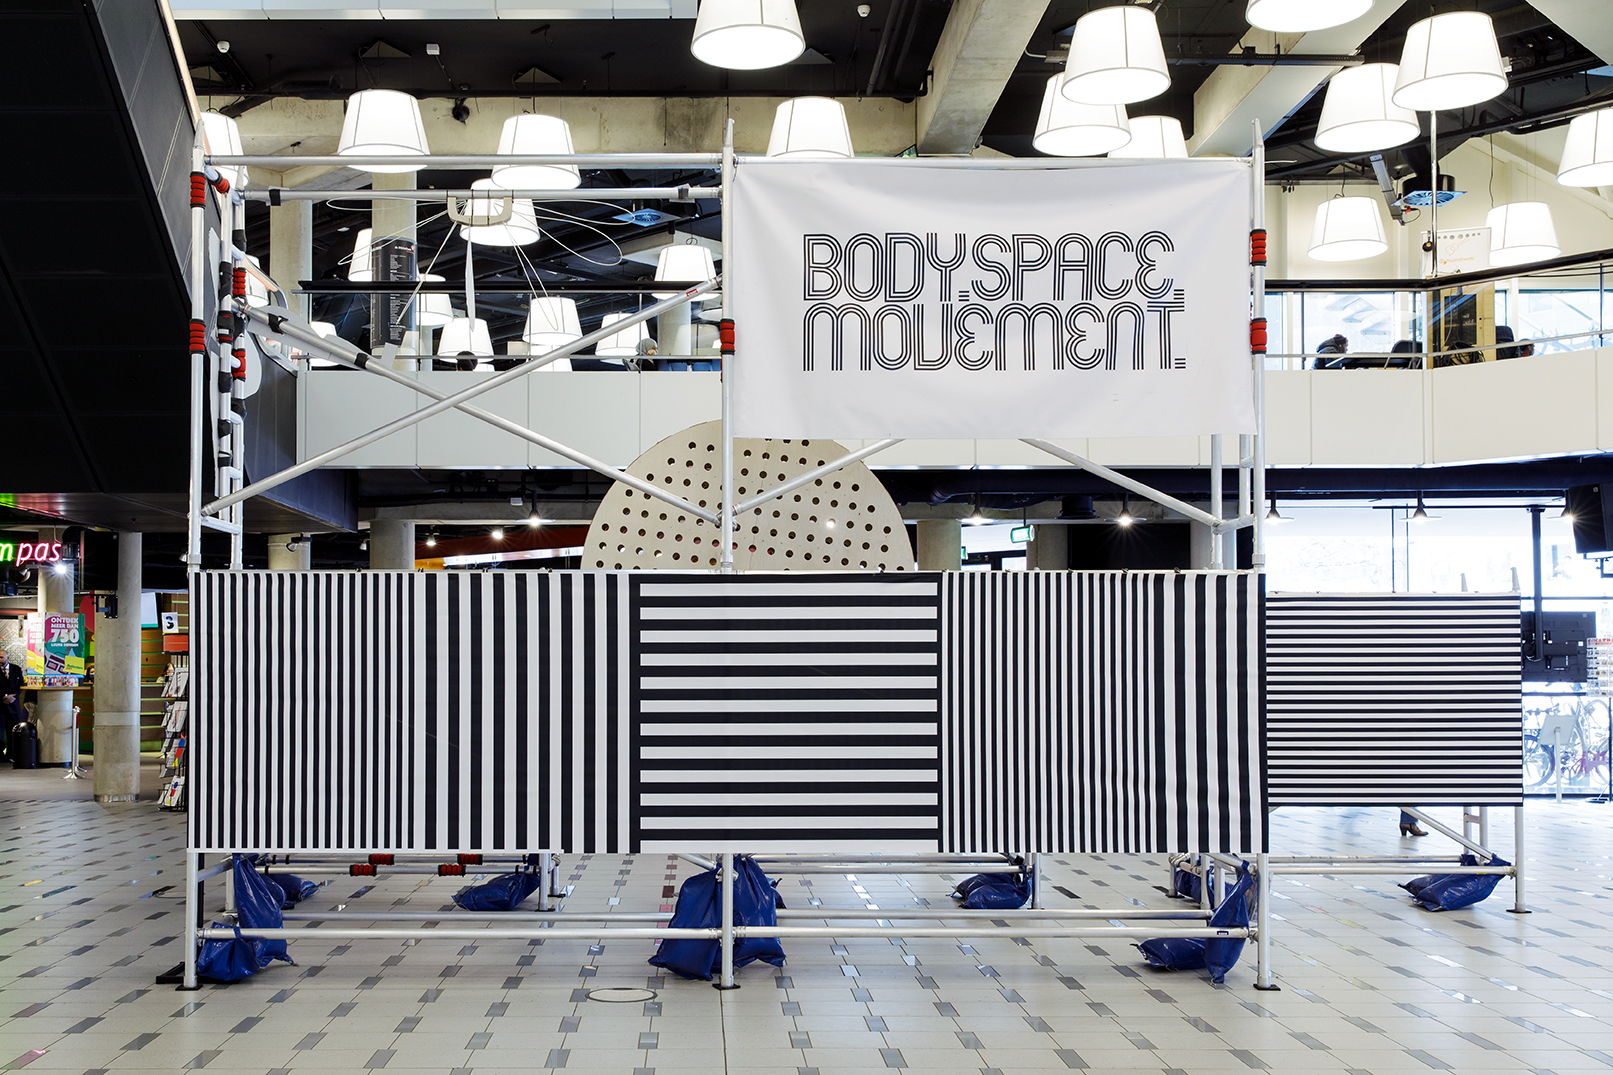 Pop-up installatie body space movement op de Central Bibliotheek Rotterdam